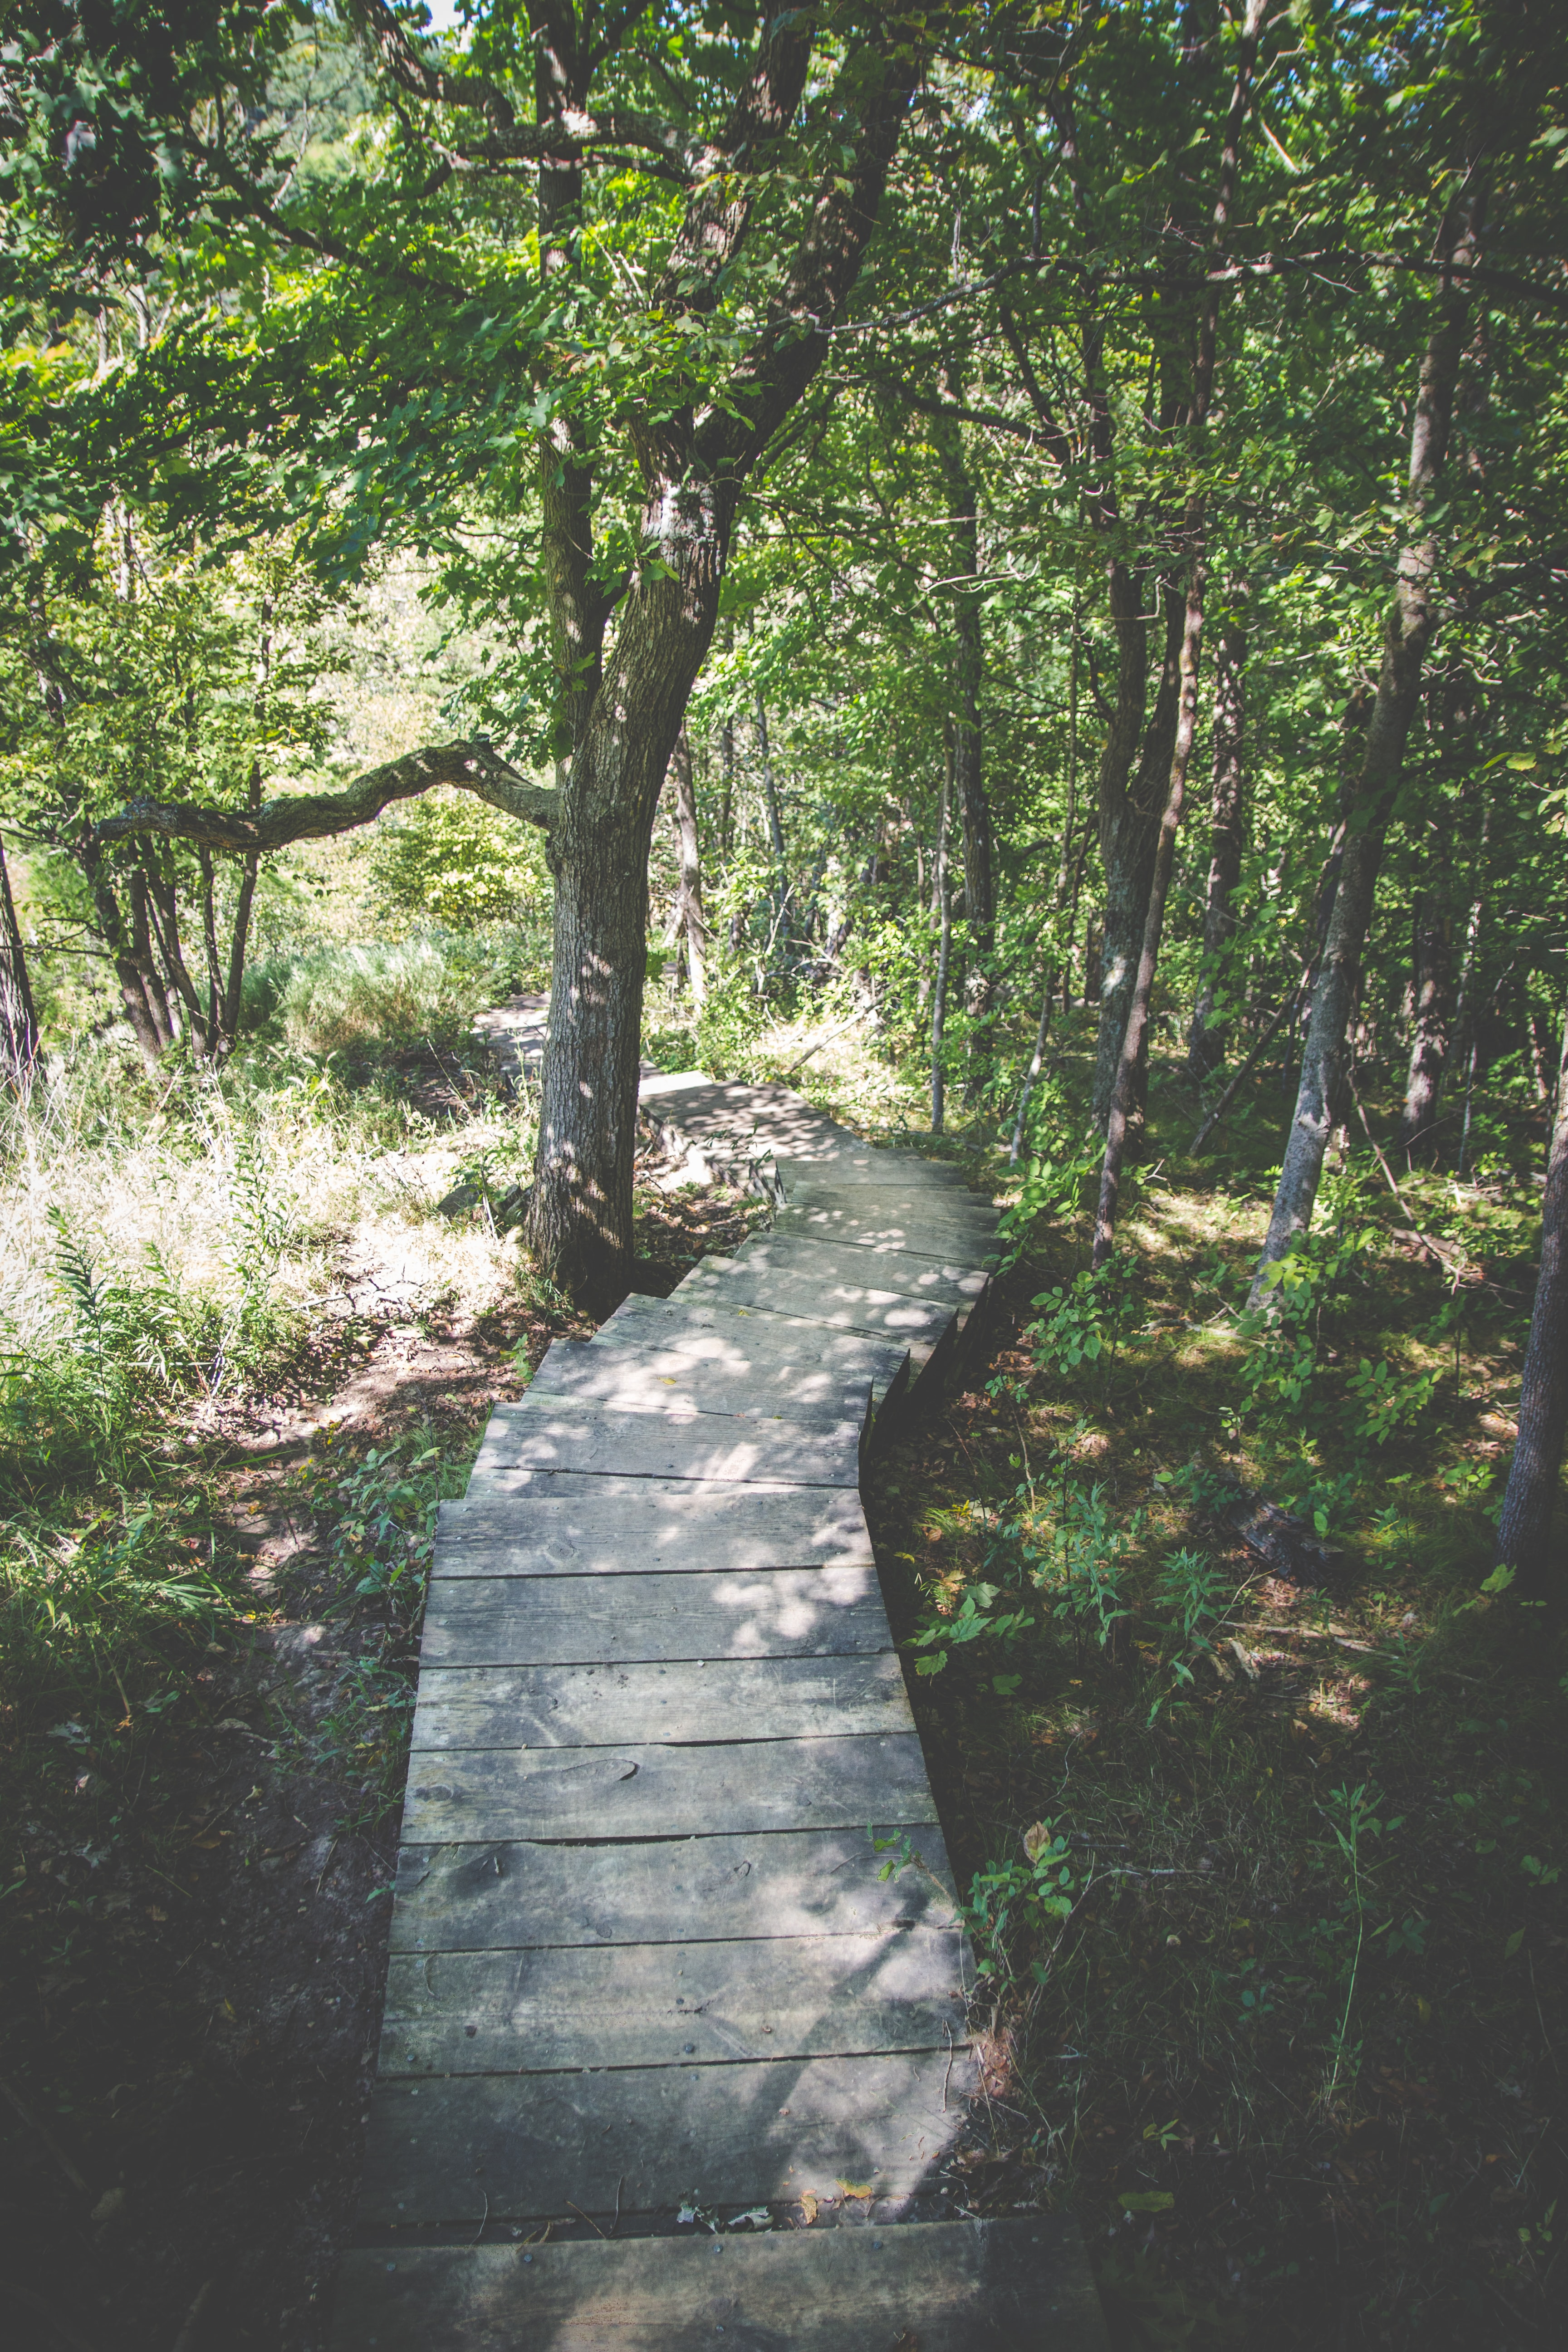 A wooden walkway through a forest